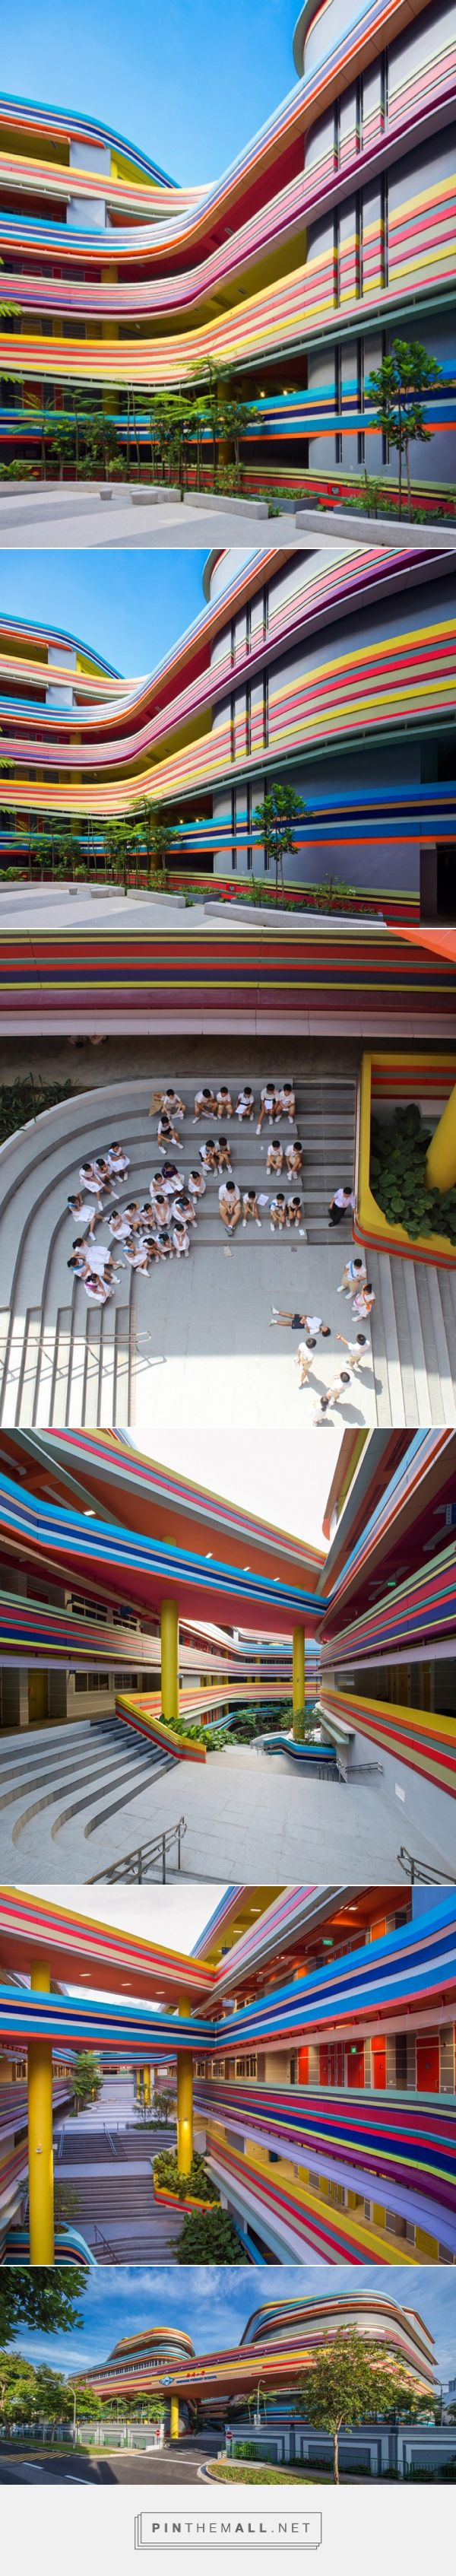 studio505 extends nanyang primary school in singapore - created via https://pinthemall.net